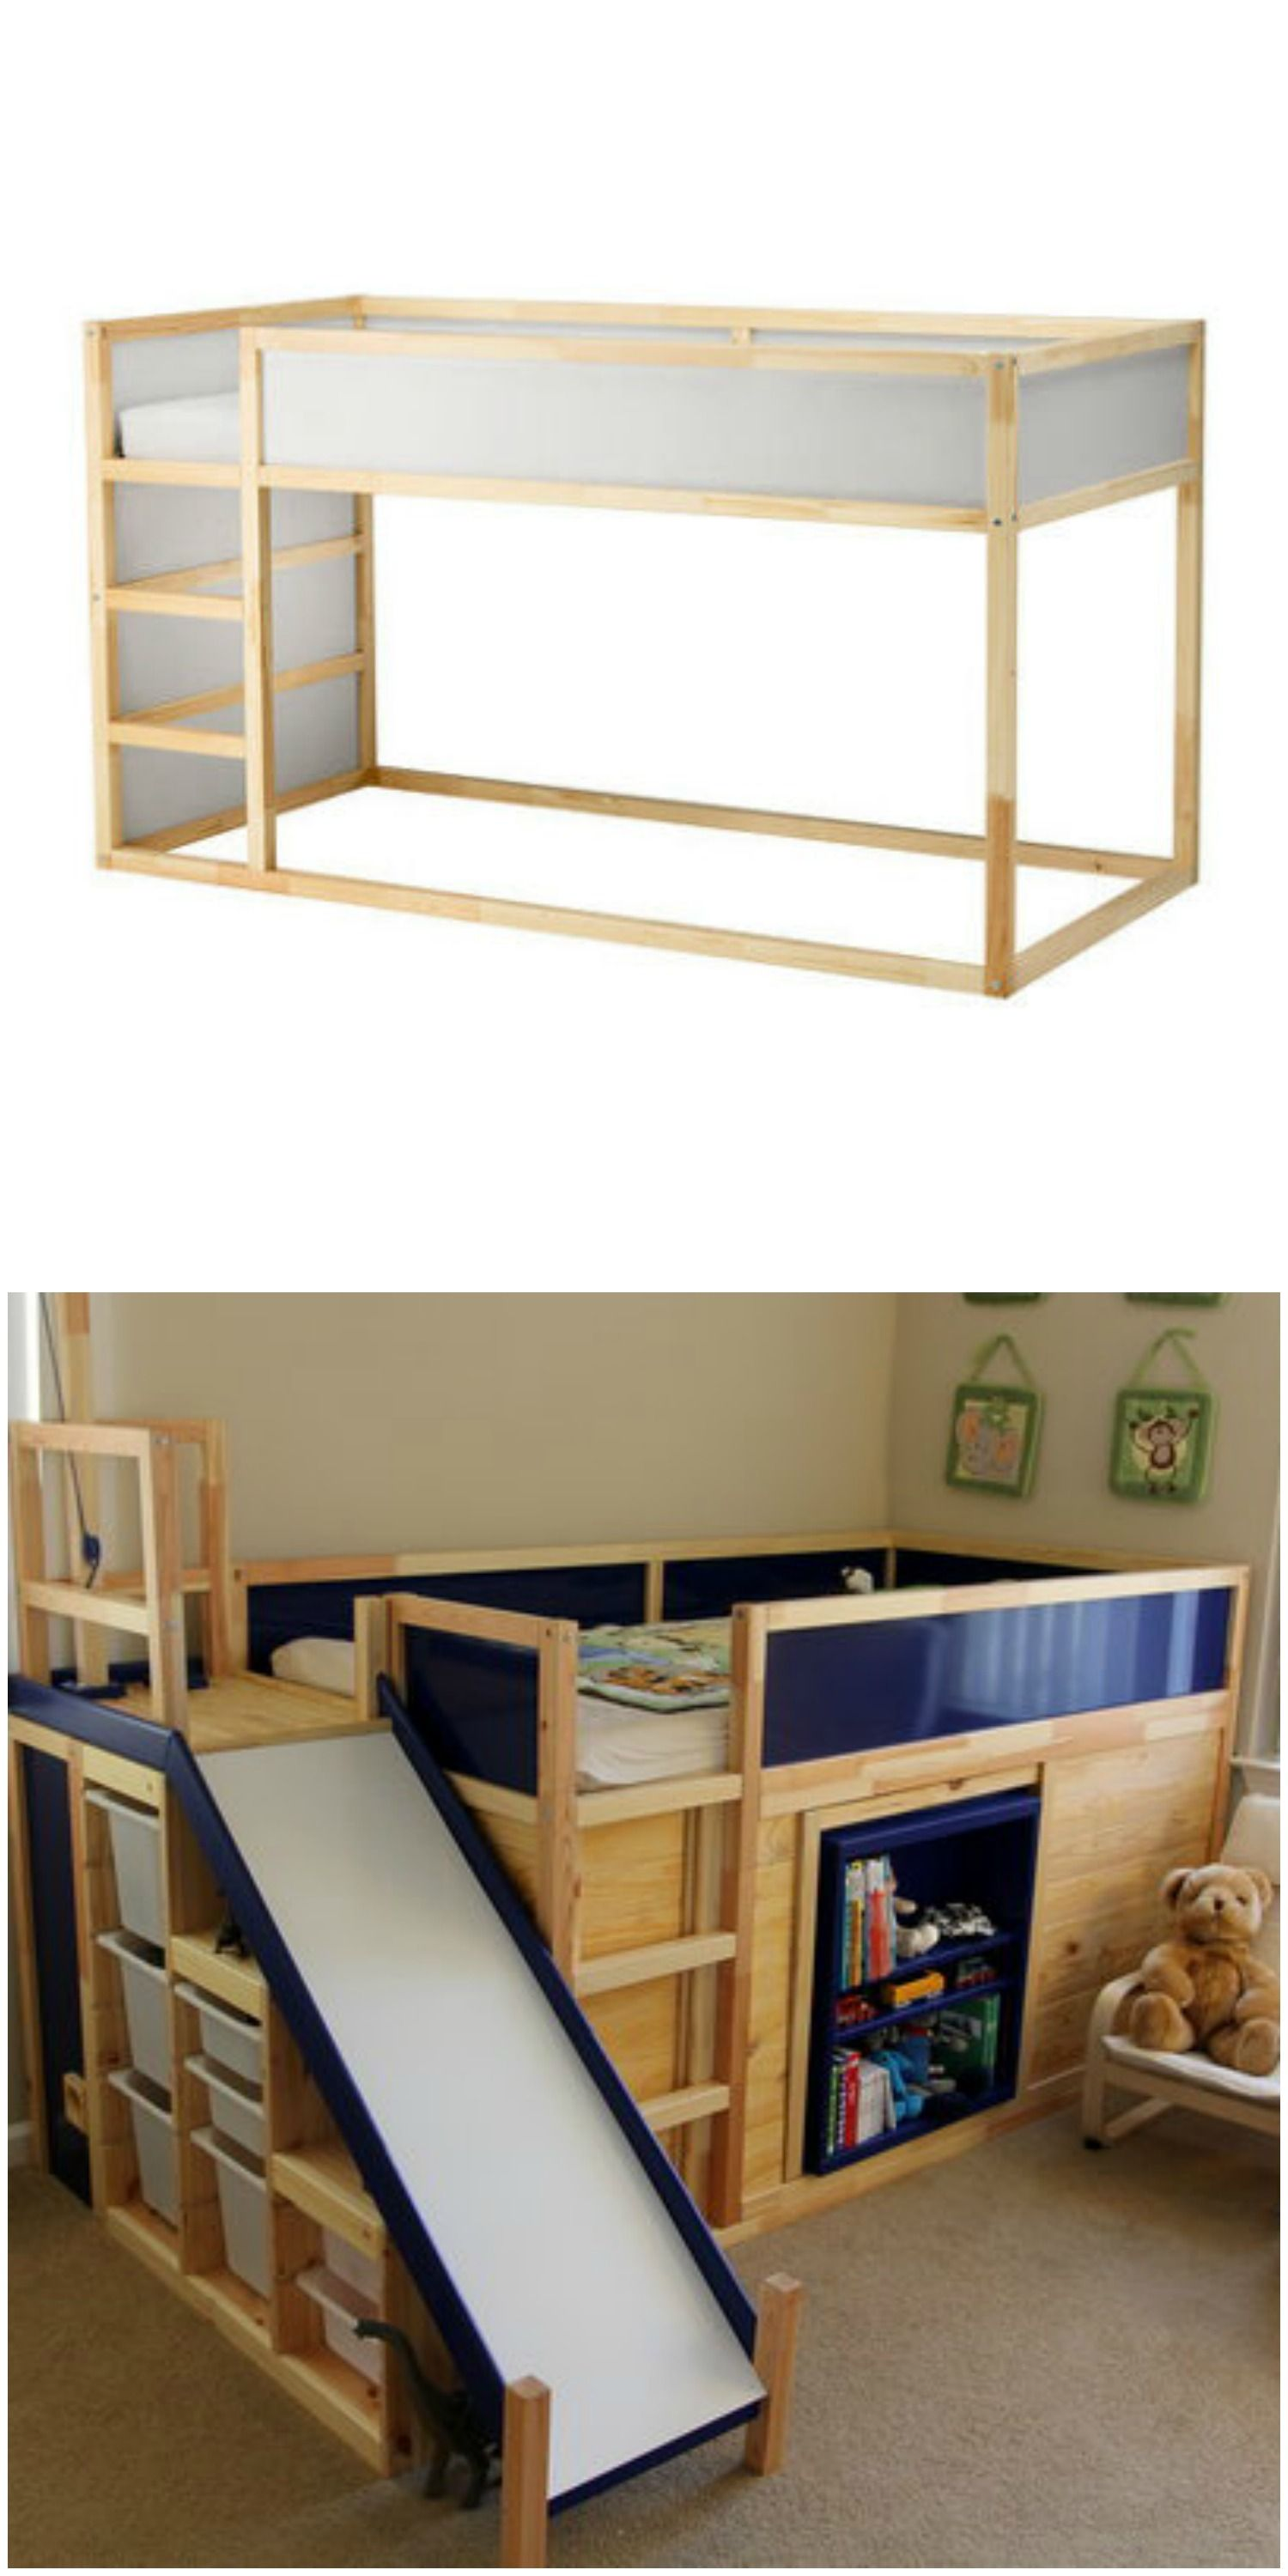 sv frame ie art ikea rta loft bunk silver solution colour space beds a good bed where products is en cm limited